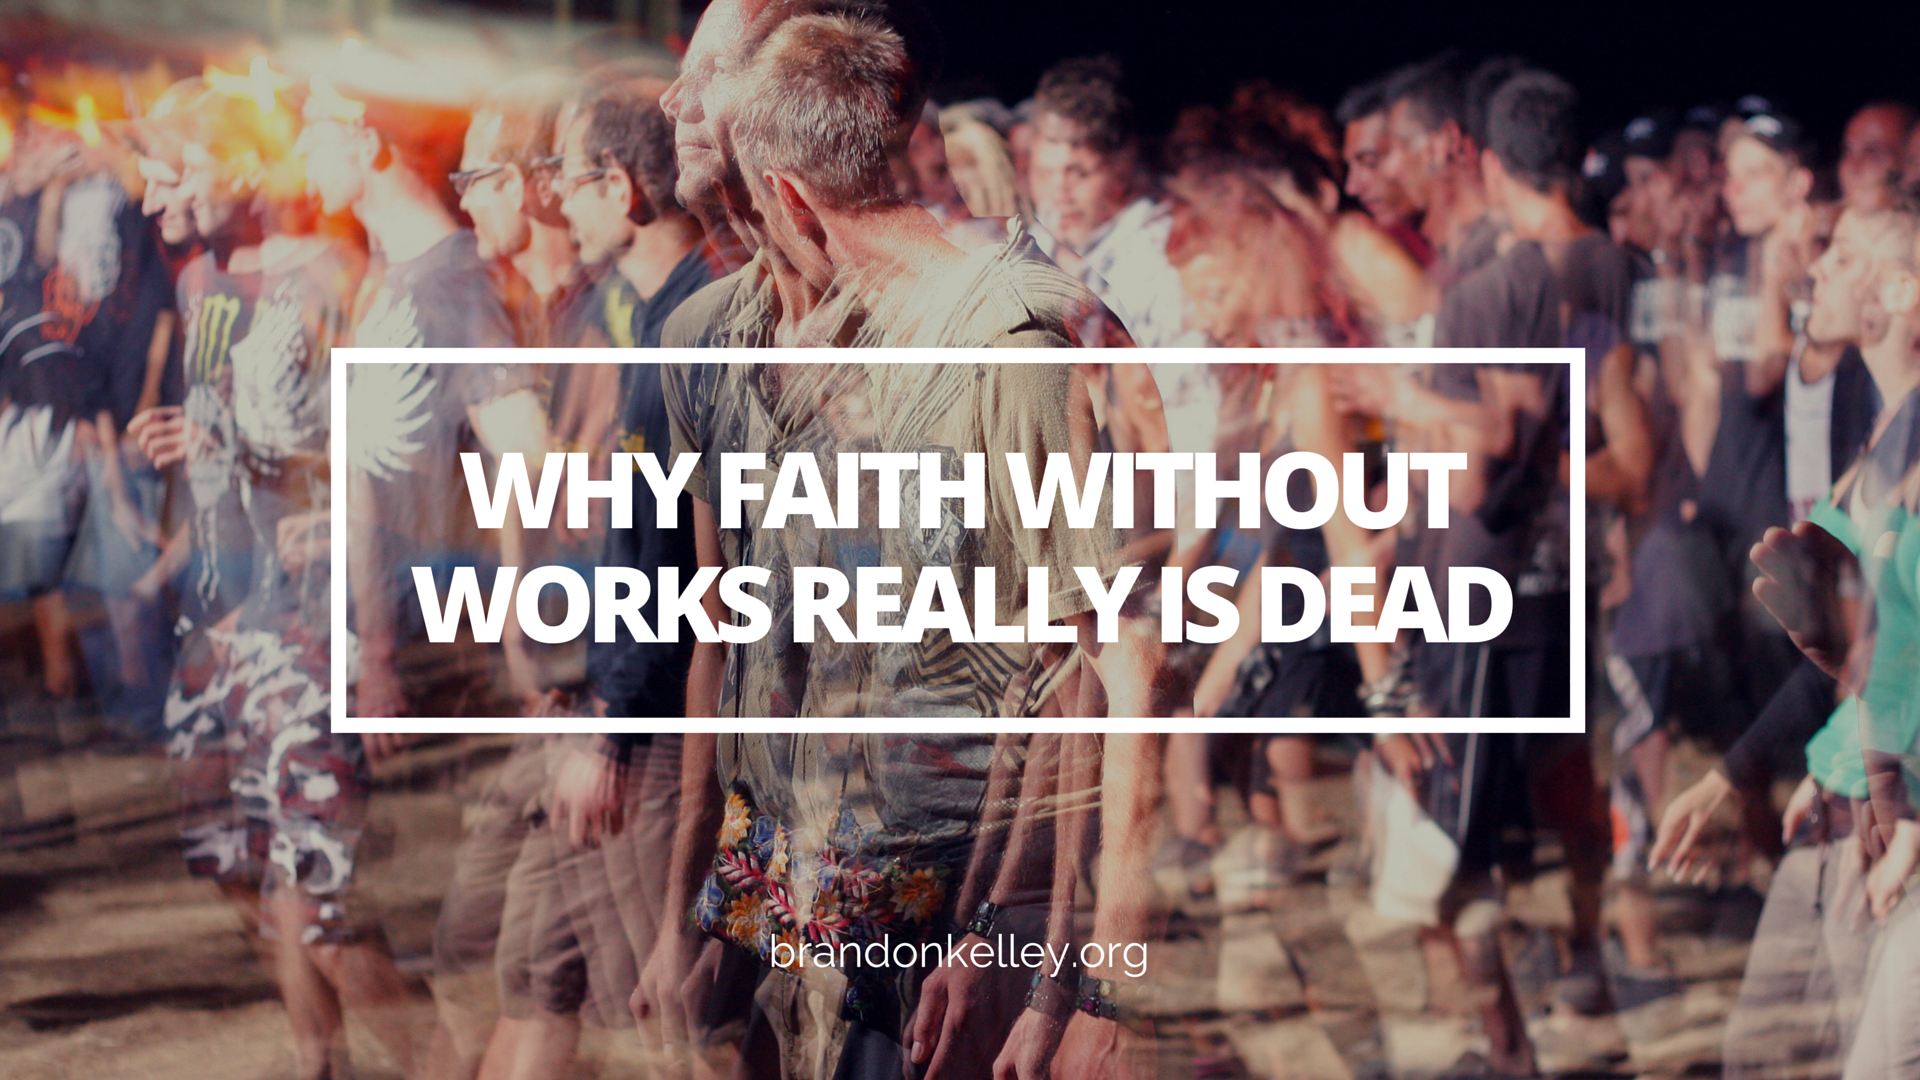 faith without works is dead